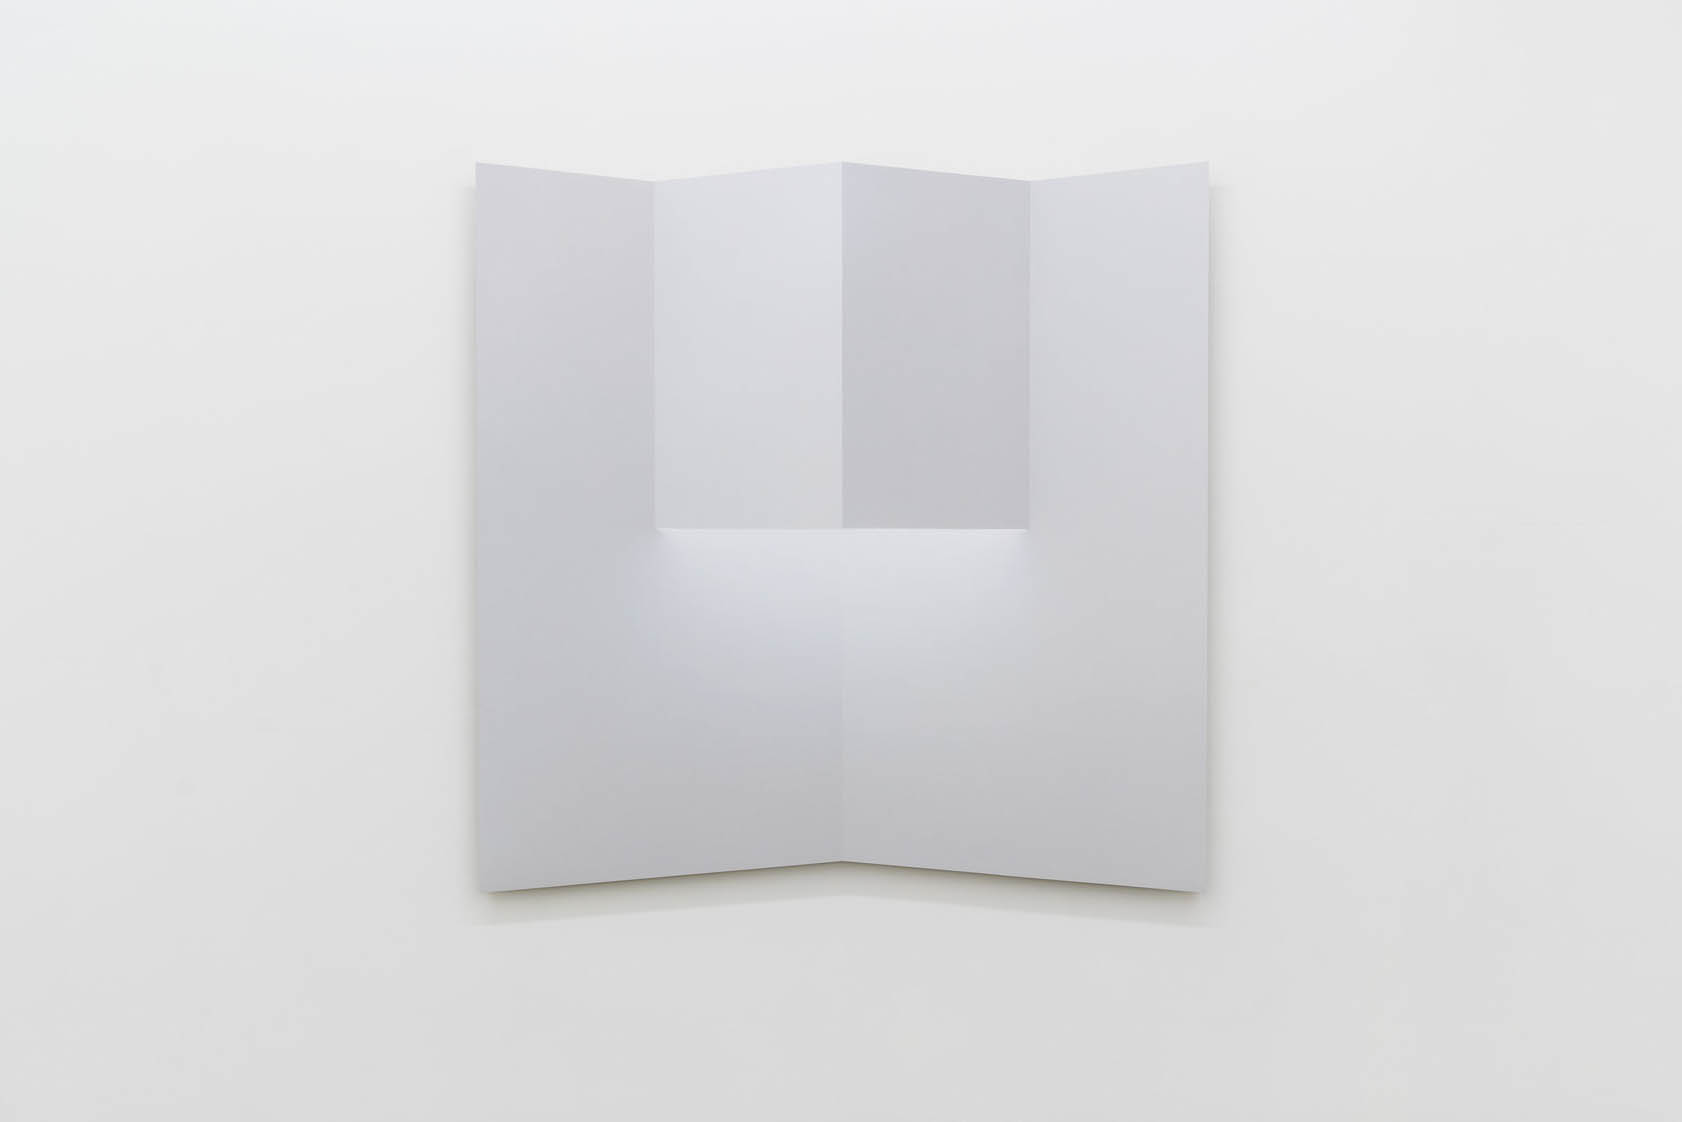 """Caroline Cloutier, Pliage 2 , 2018, ink on paper mounted on aluminum, 42.5"""" x 42.5"""" (108 x 108 cm)"""